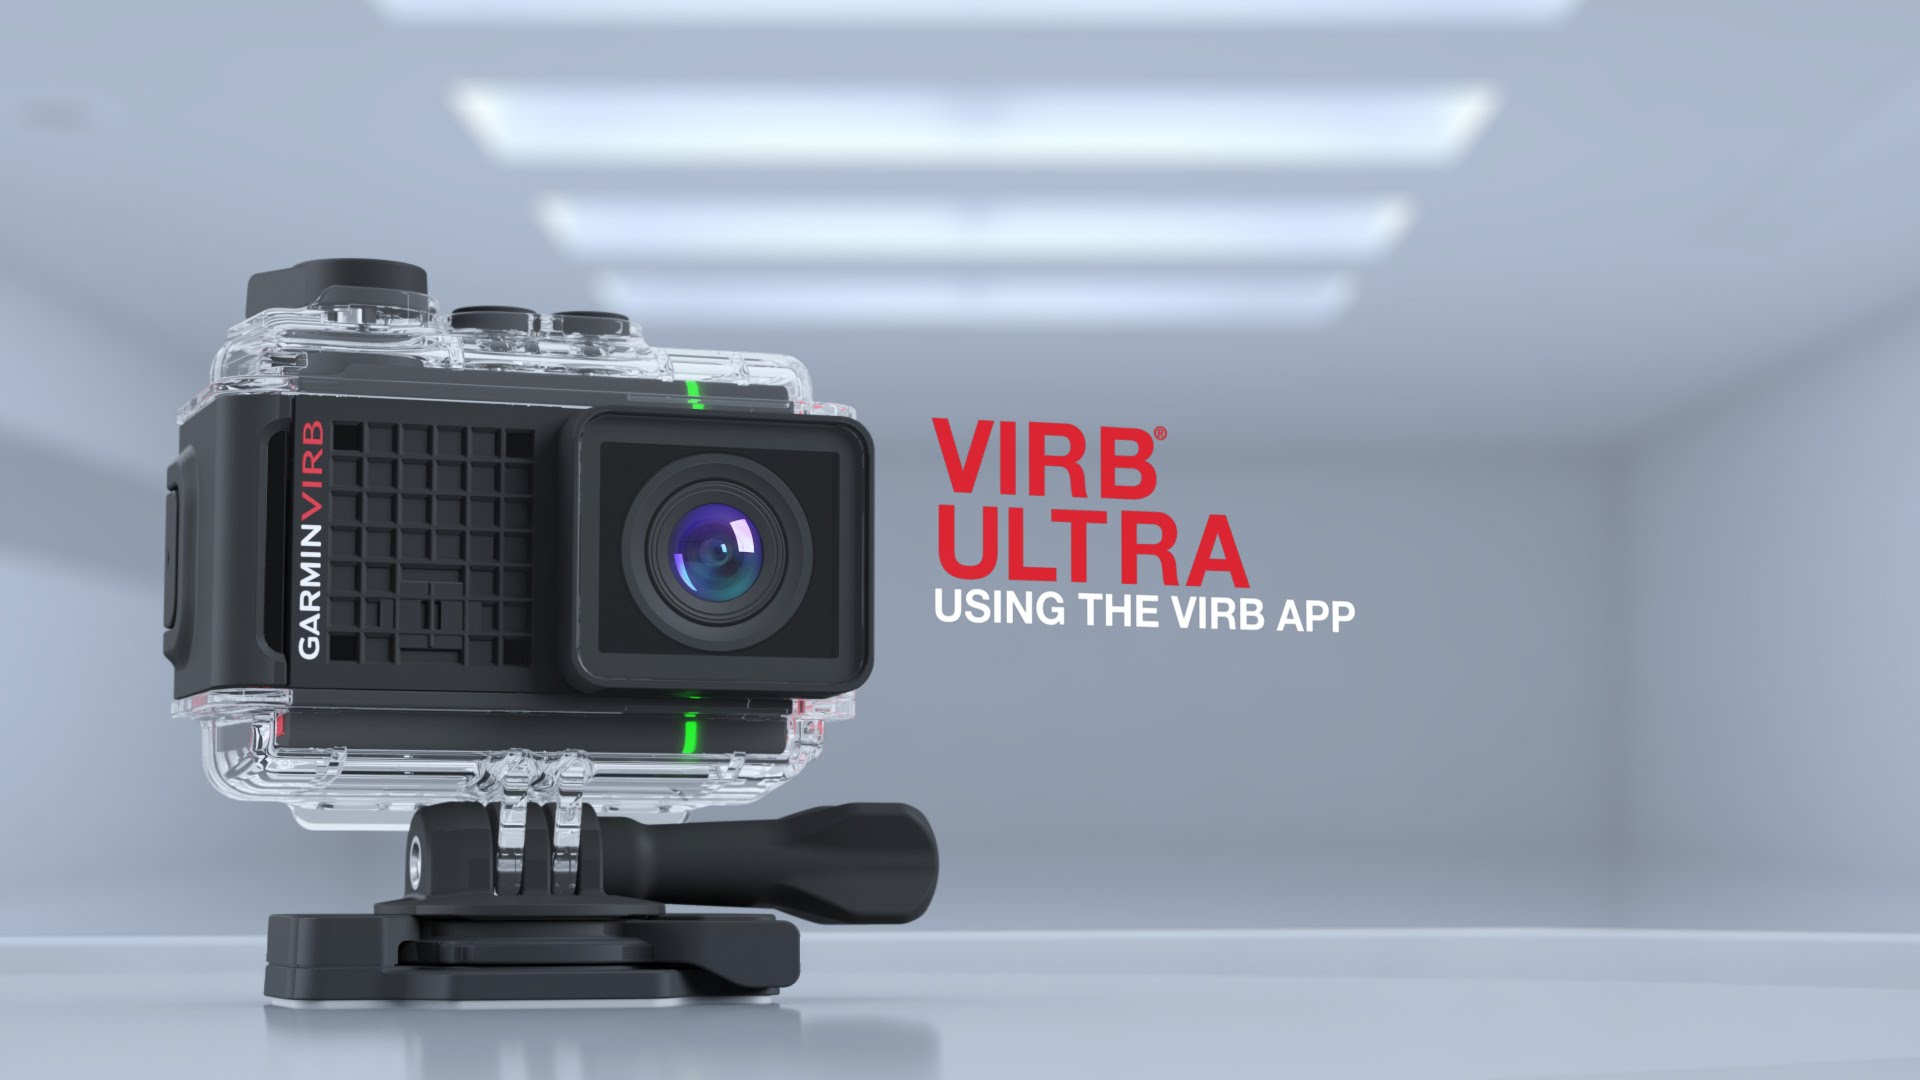 VIRB Ultra: Using the VIRB App